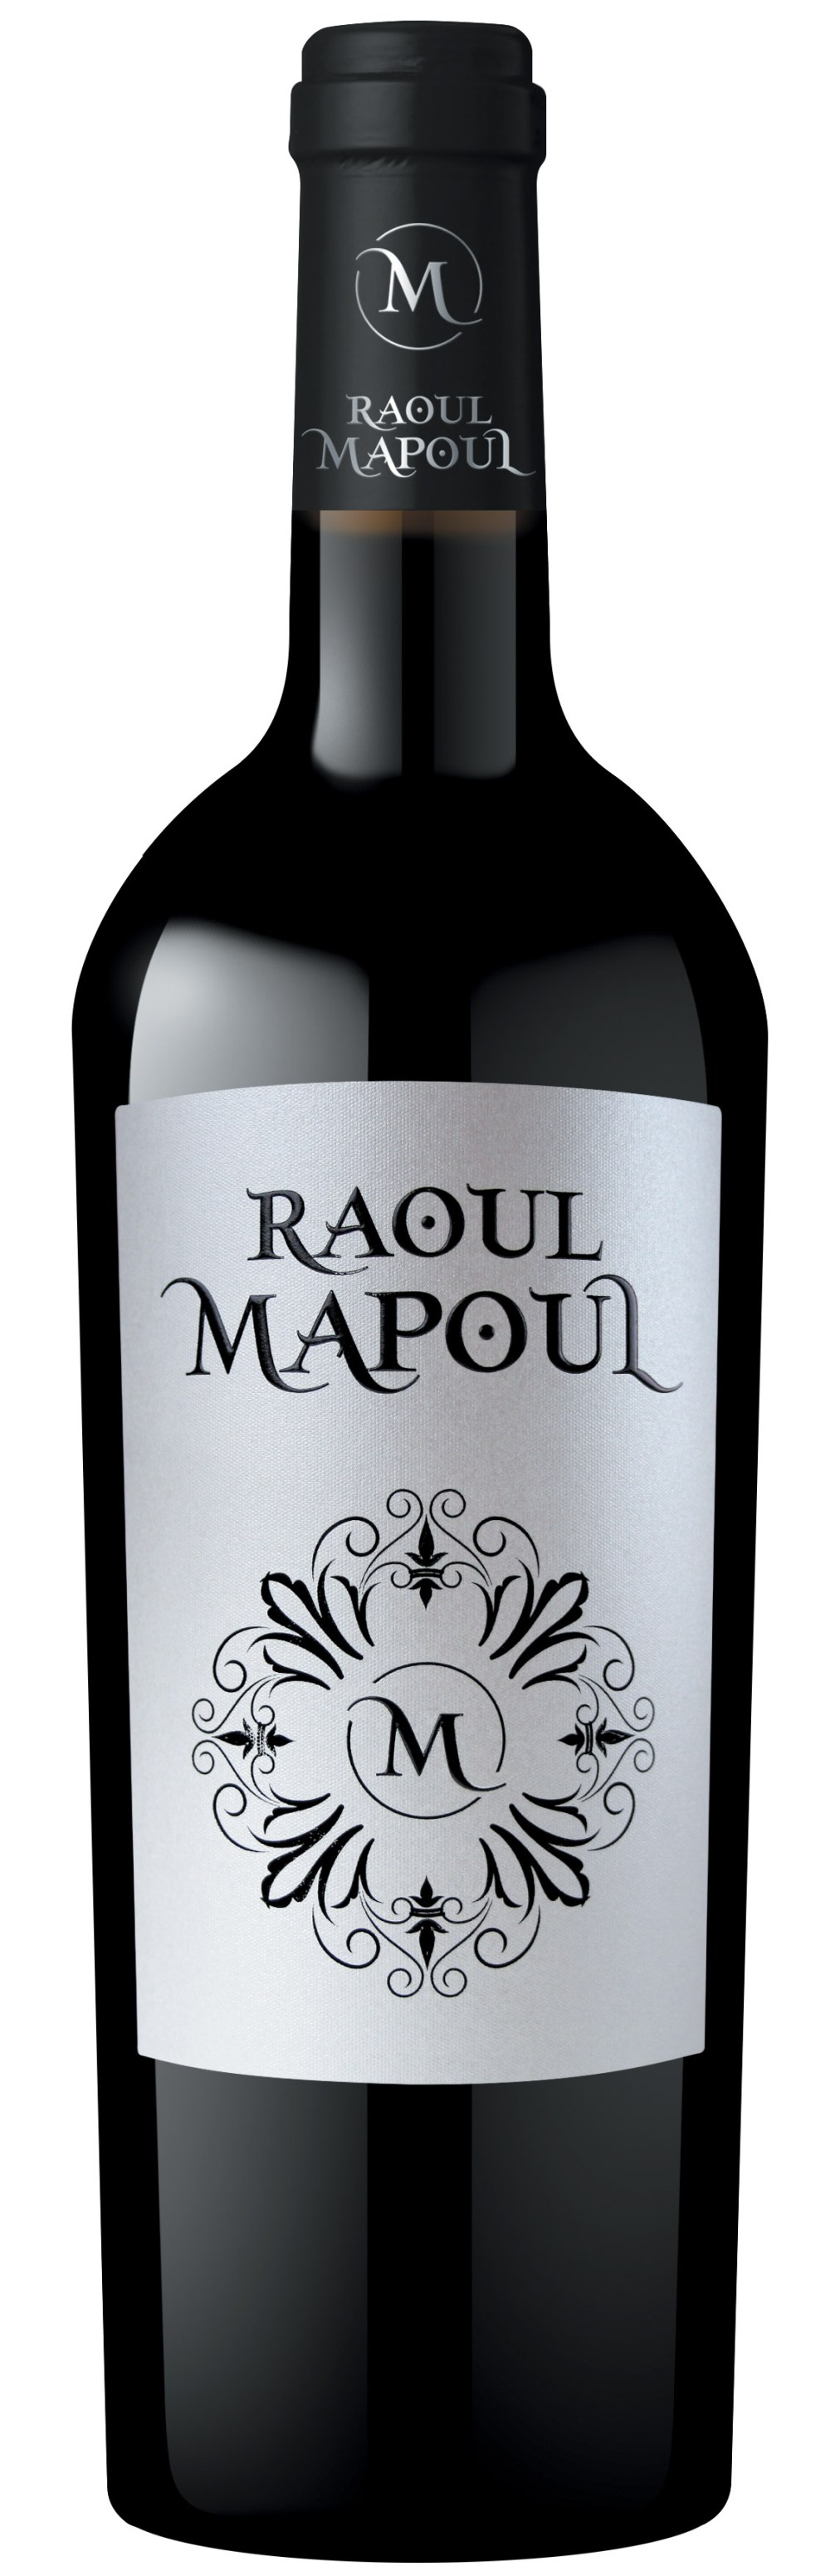 RAOUL MAPOUL rouge